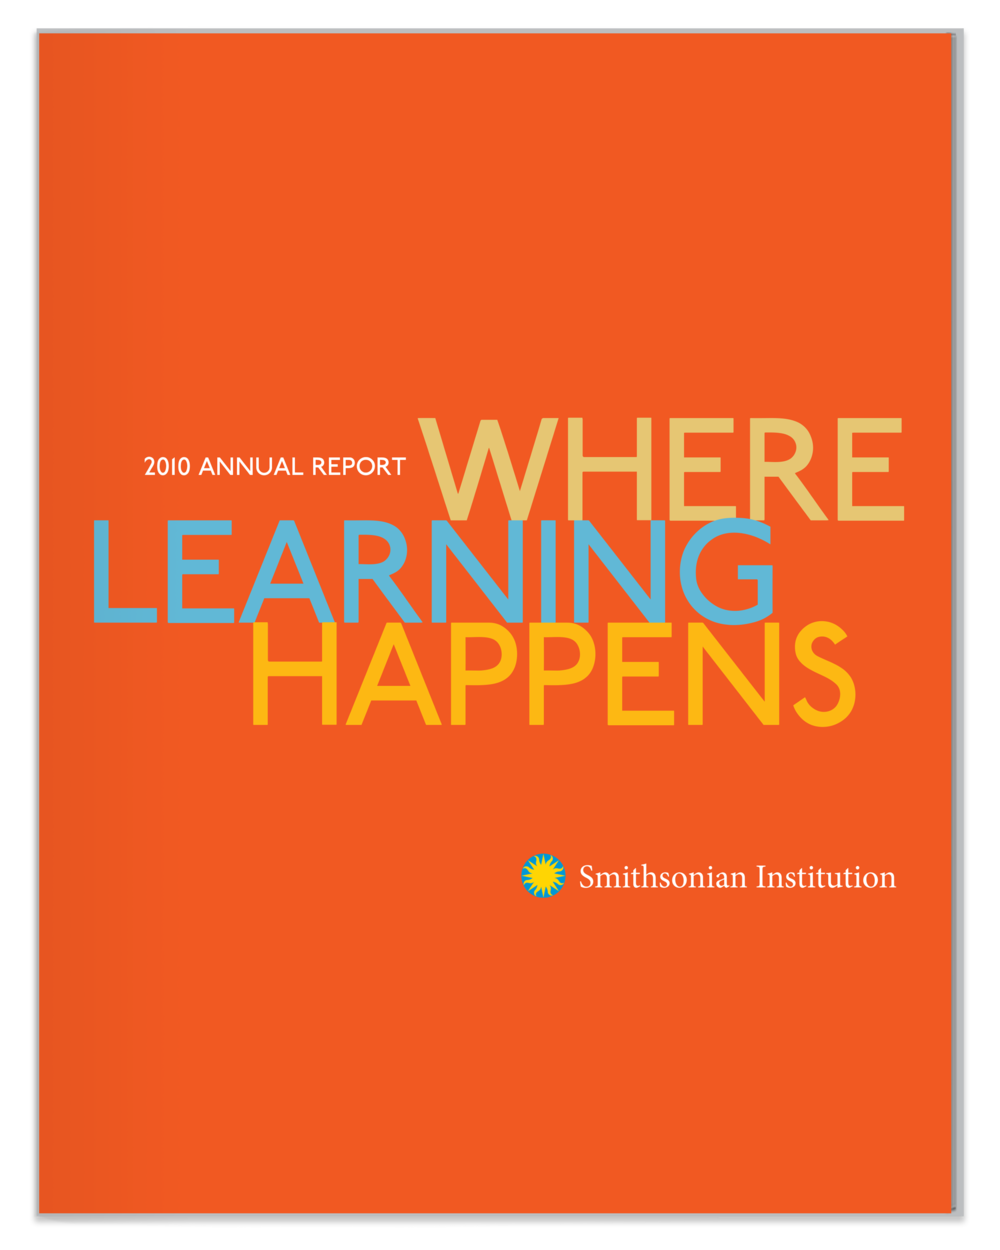 Smithsonian 2010 annual report